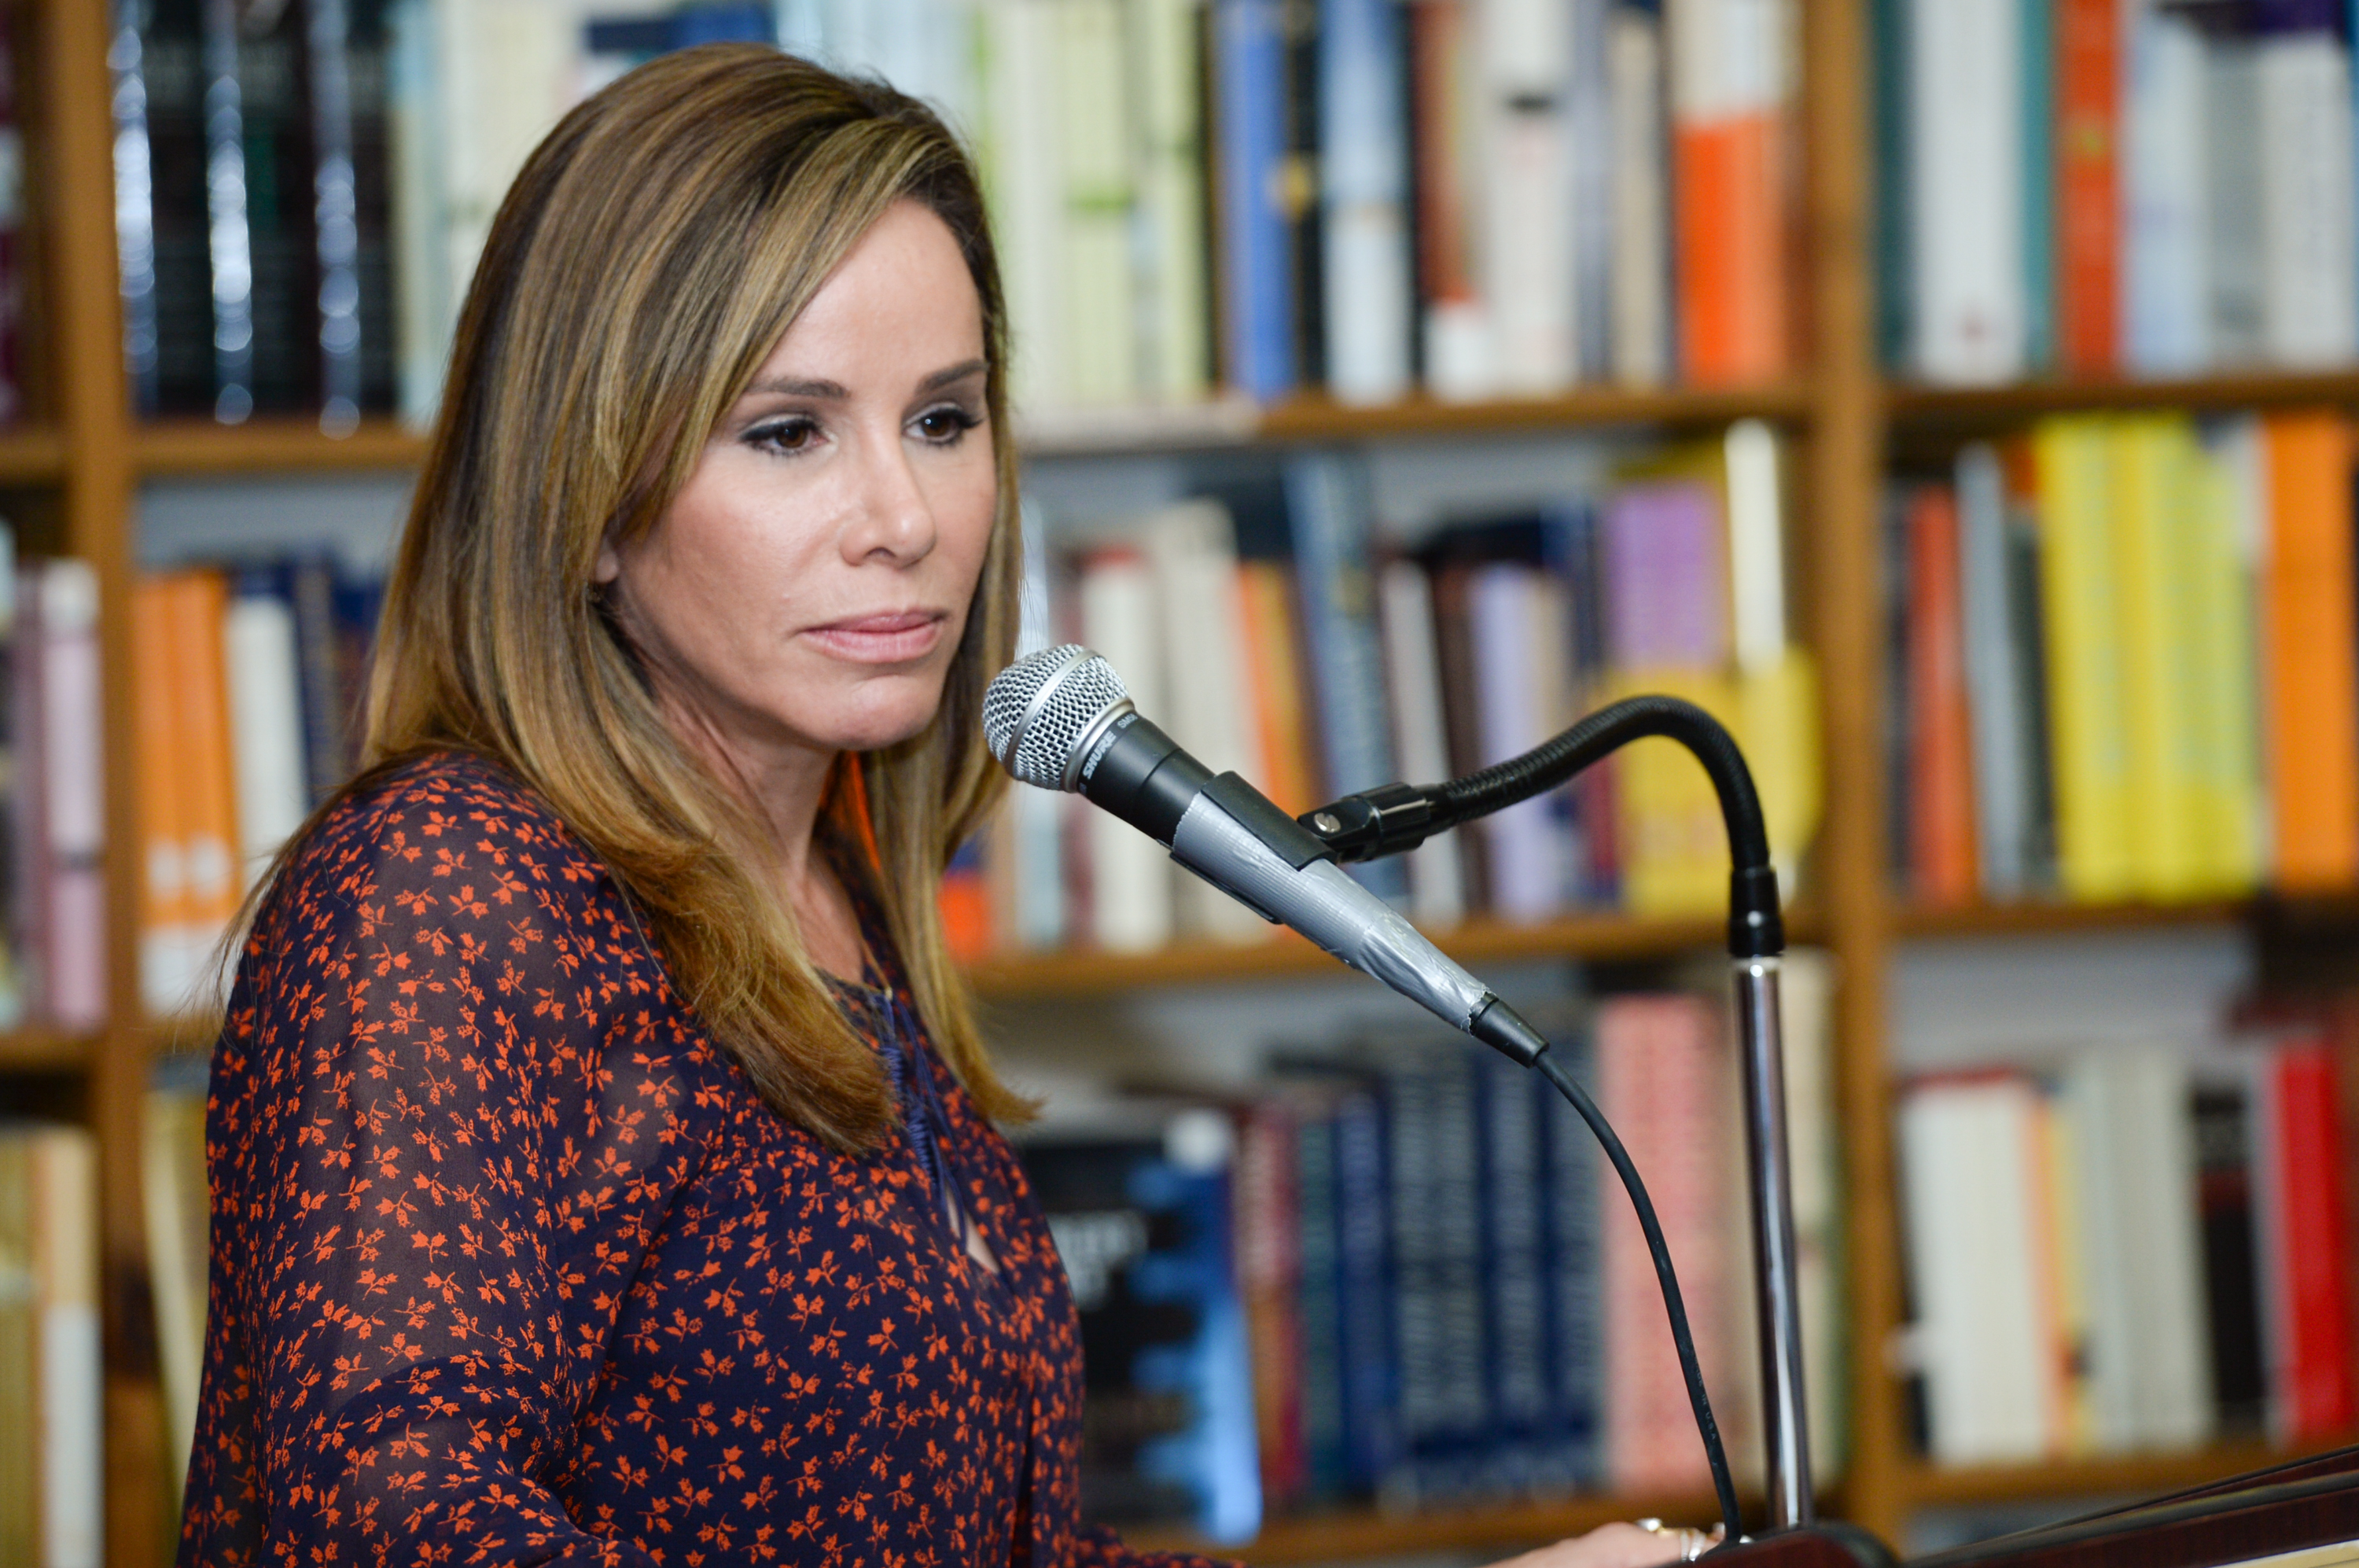 Television personality Melissa Rivers speaks at a book signing for her new book  The Book of Joan: Tales of Mirth, Mischief, and Manipulation  at Book Revue on May 11, 2015, in Huntington, N.Y.